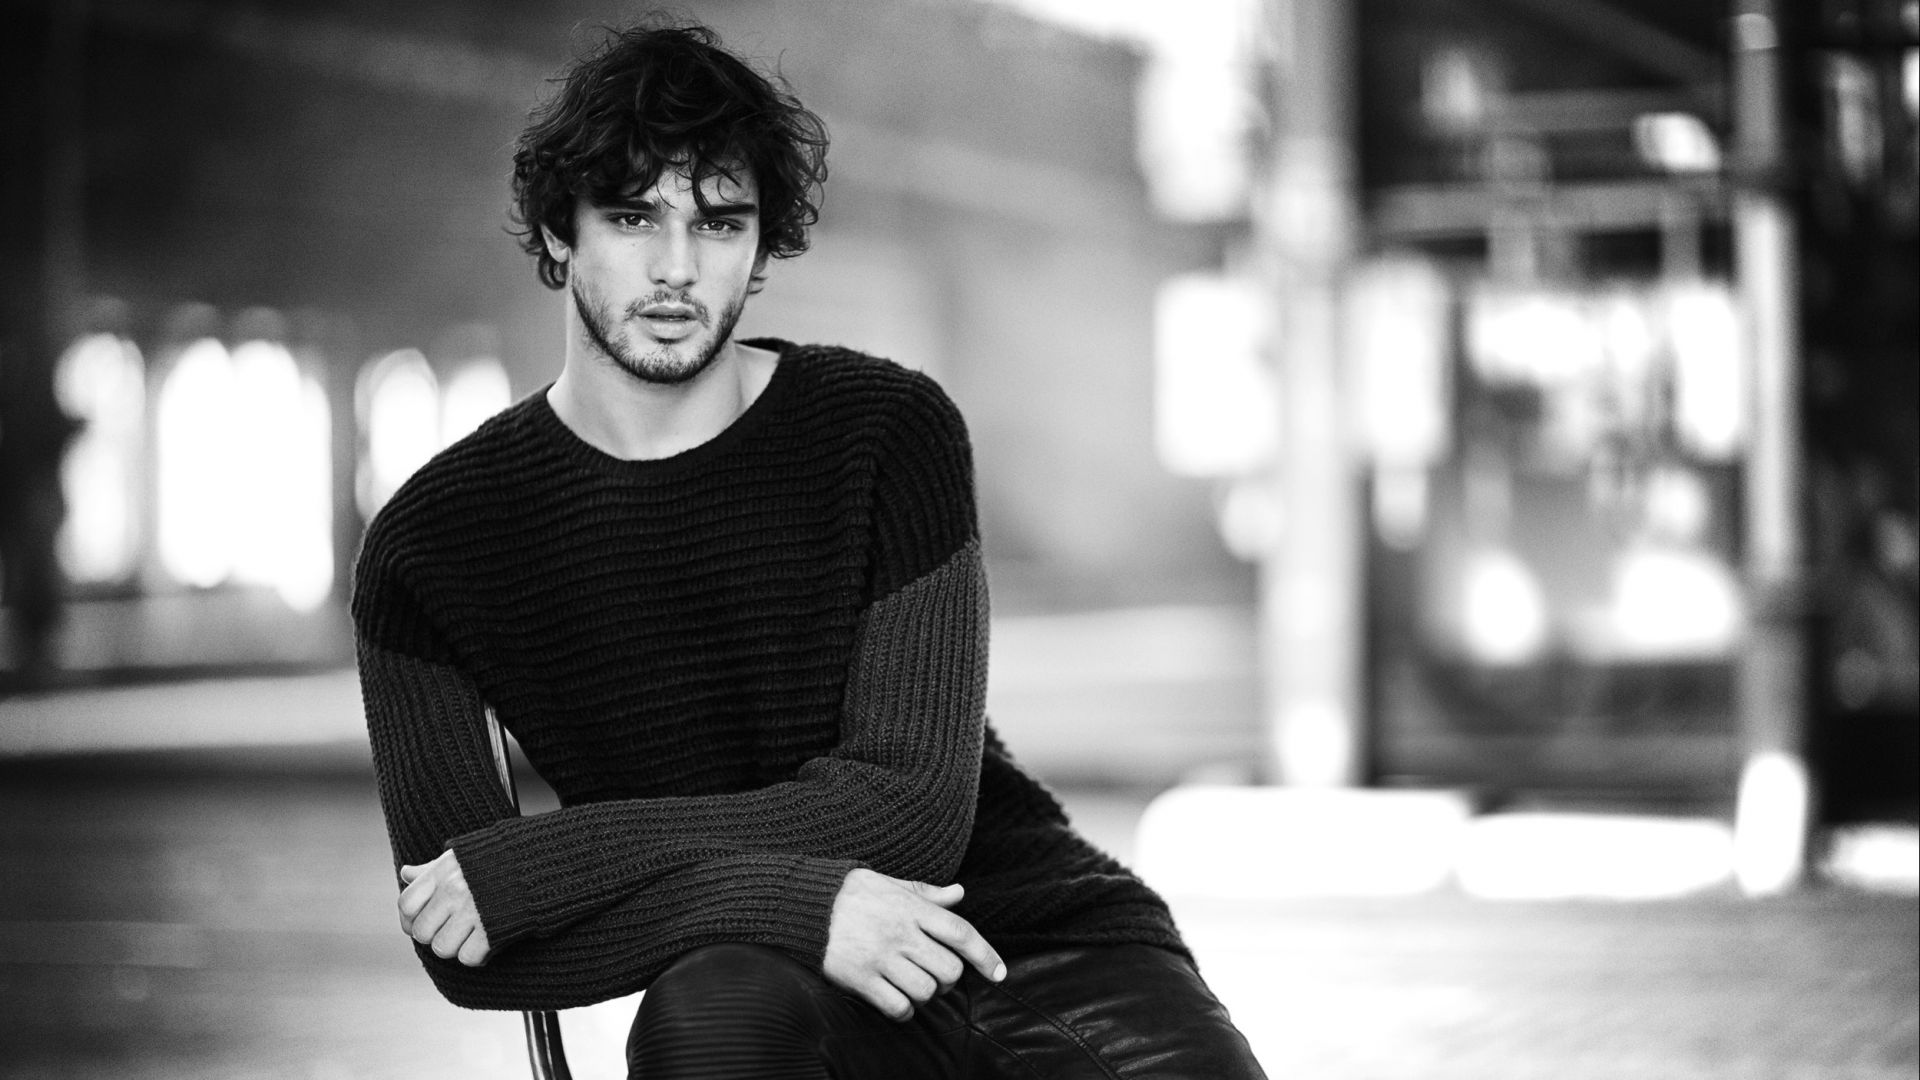 Марлон Тейшейра, Топ Модель, модель, пляж, Marlon Teixeira, Top Fashion Male Models, model, beach (horizontal)